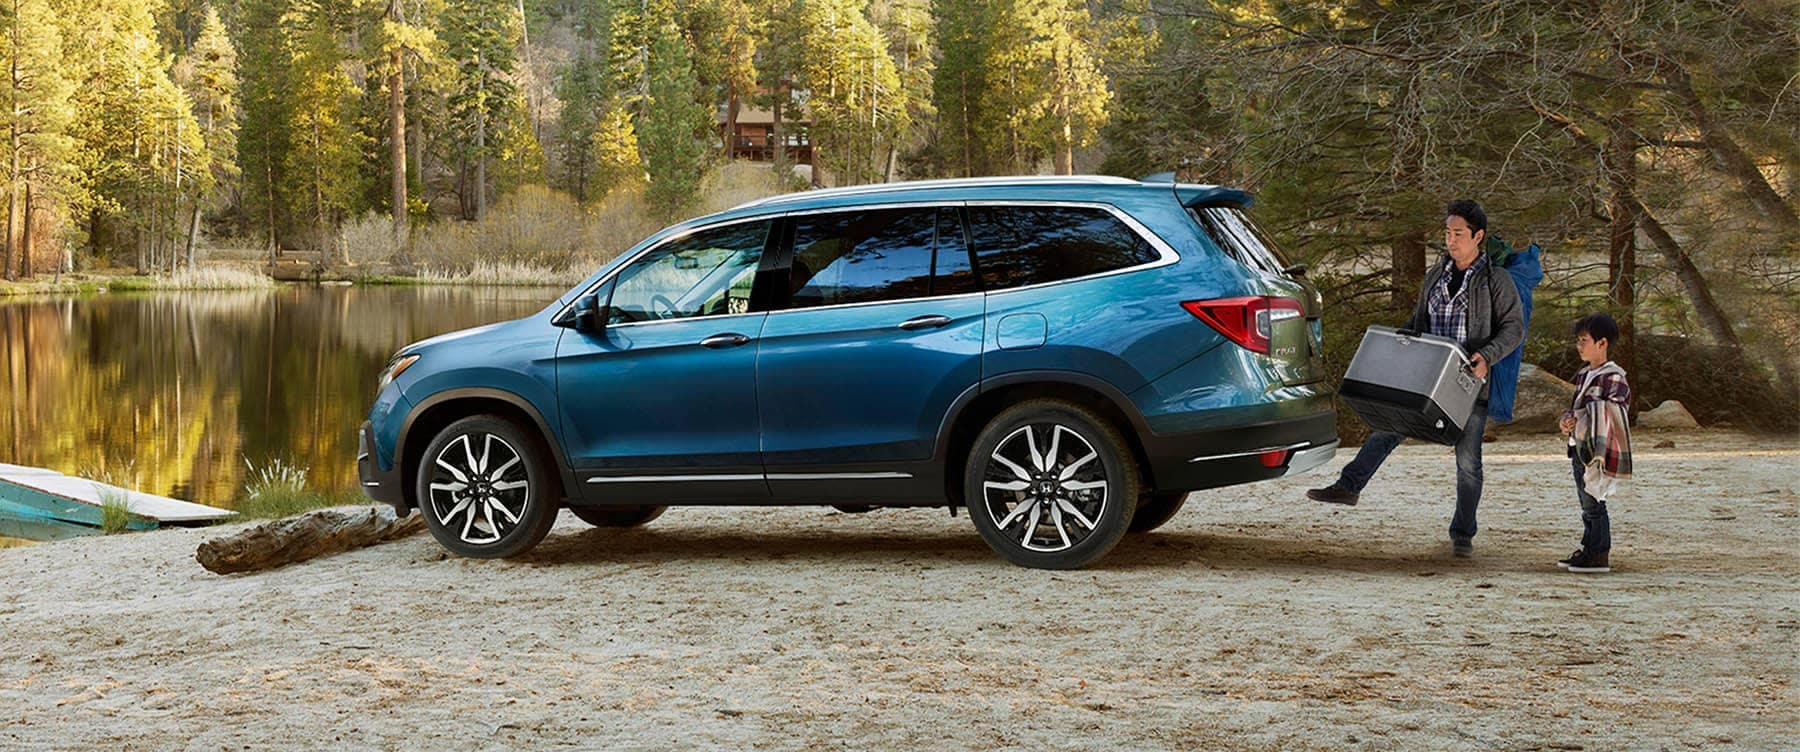 2019 Honda Pilot Parked At Lake With Handsfree Tailgate